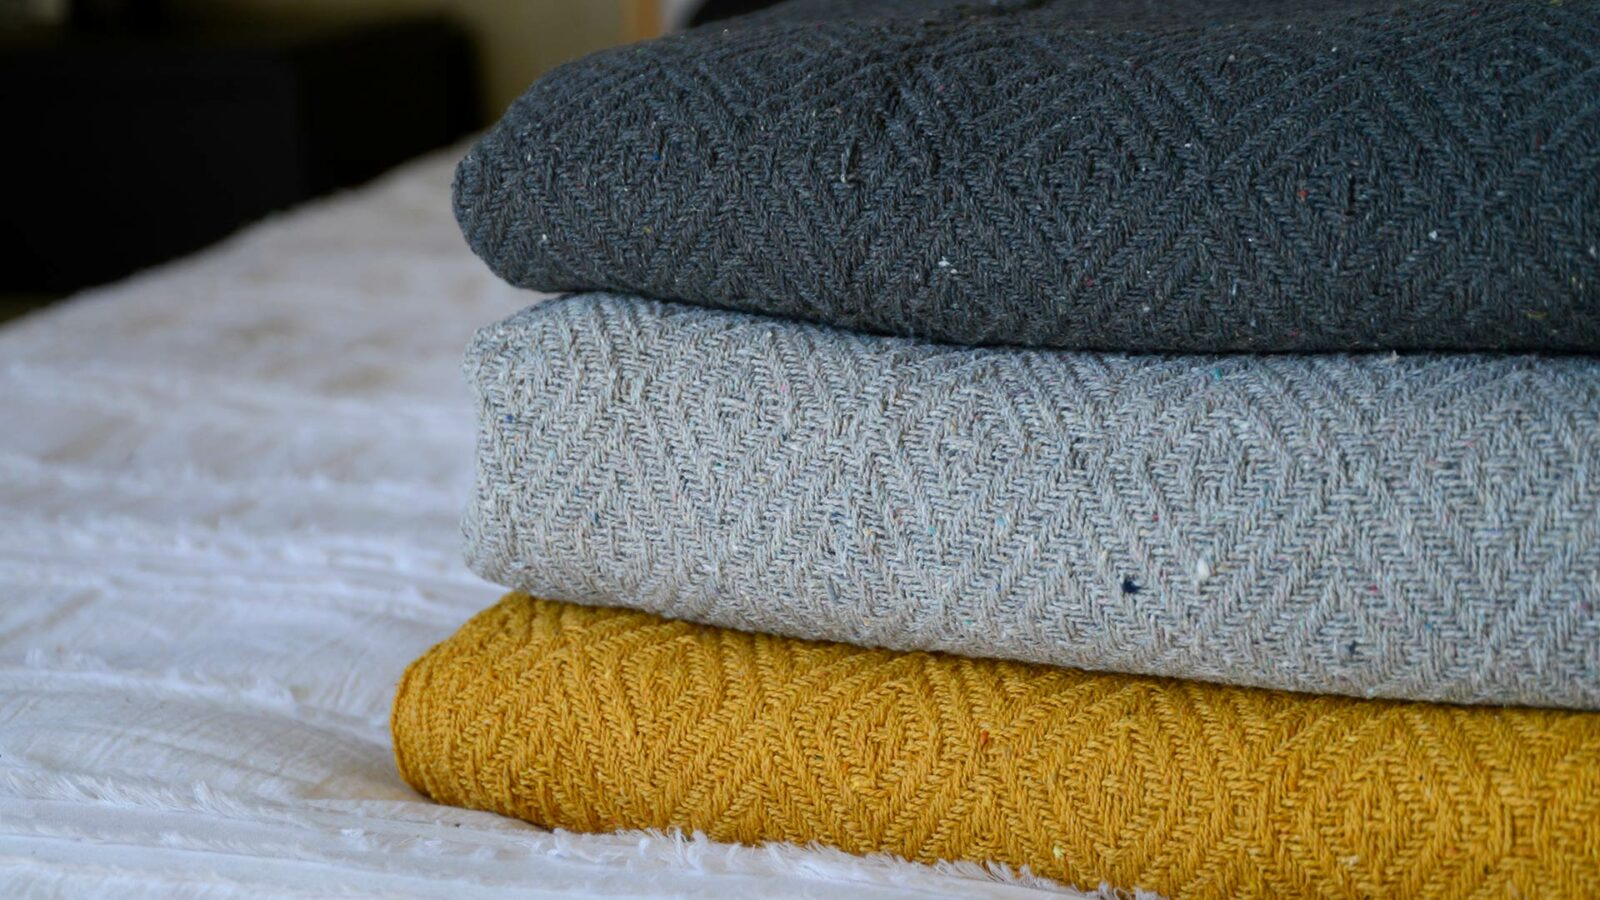 diamond weave cotton throws in 3 colour ways shown close up and stacked